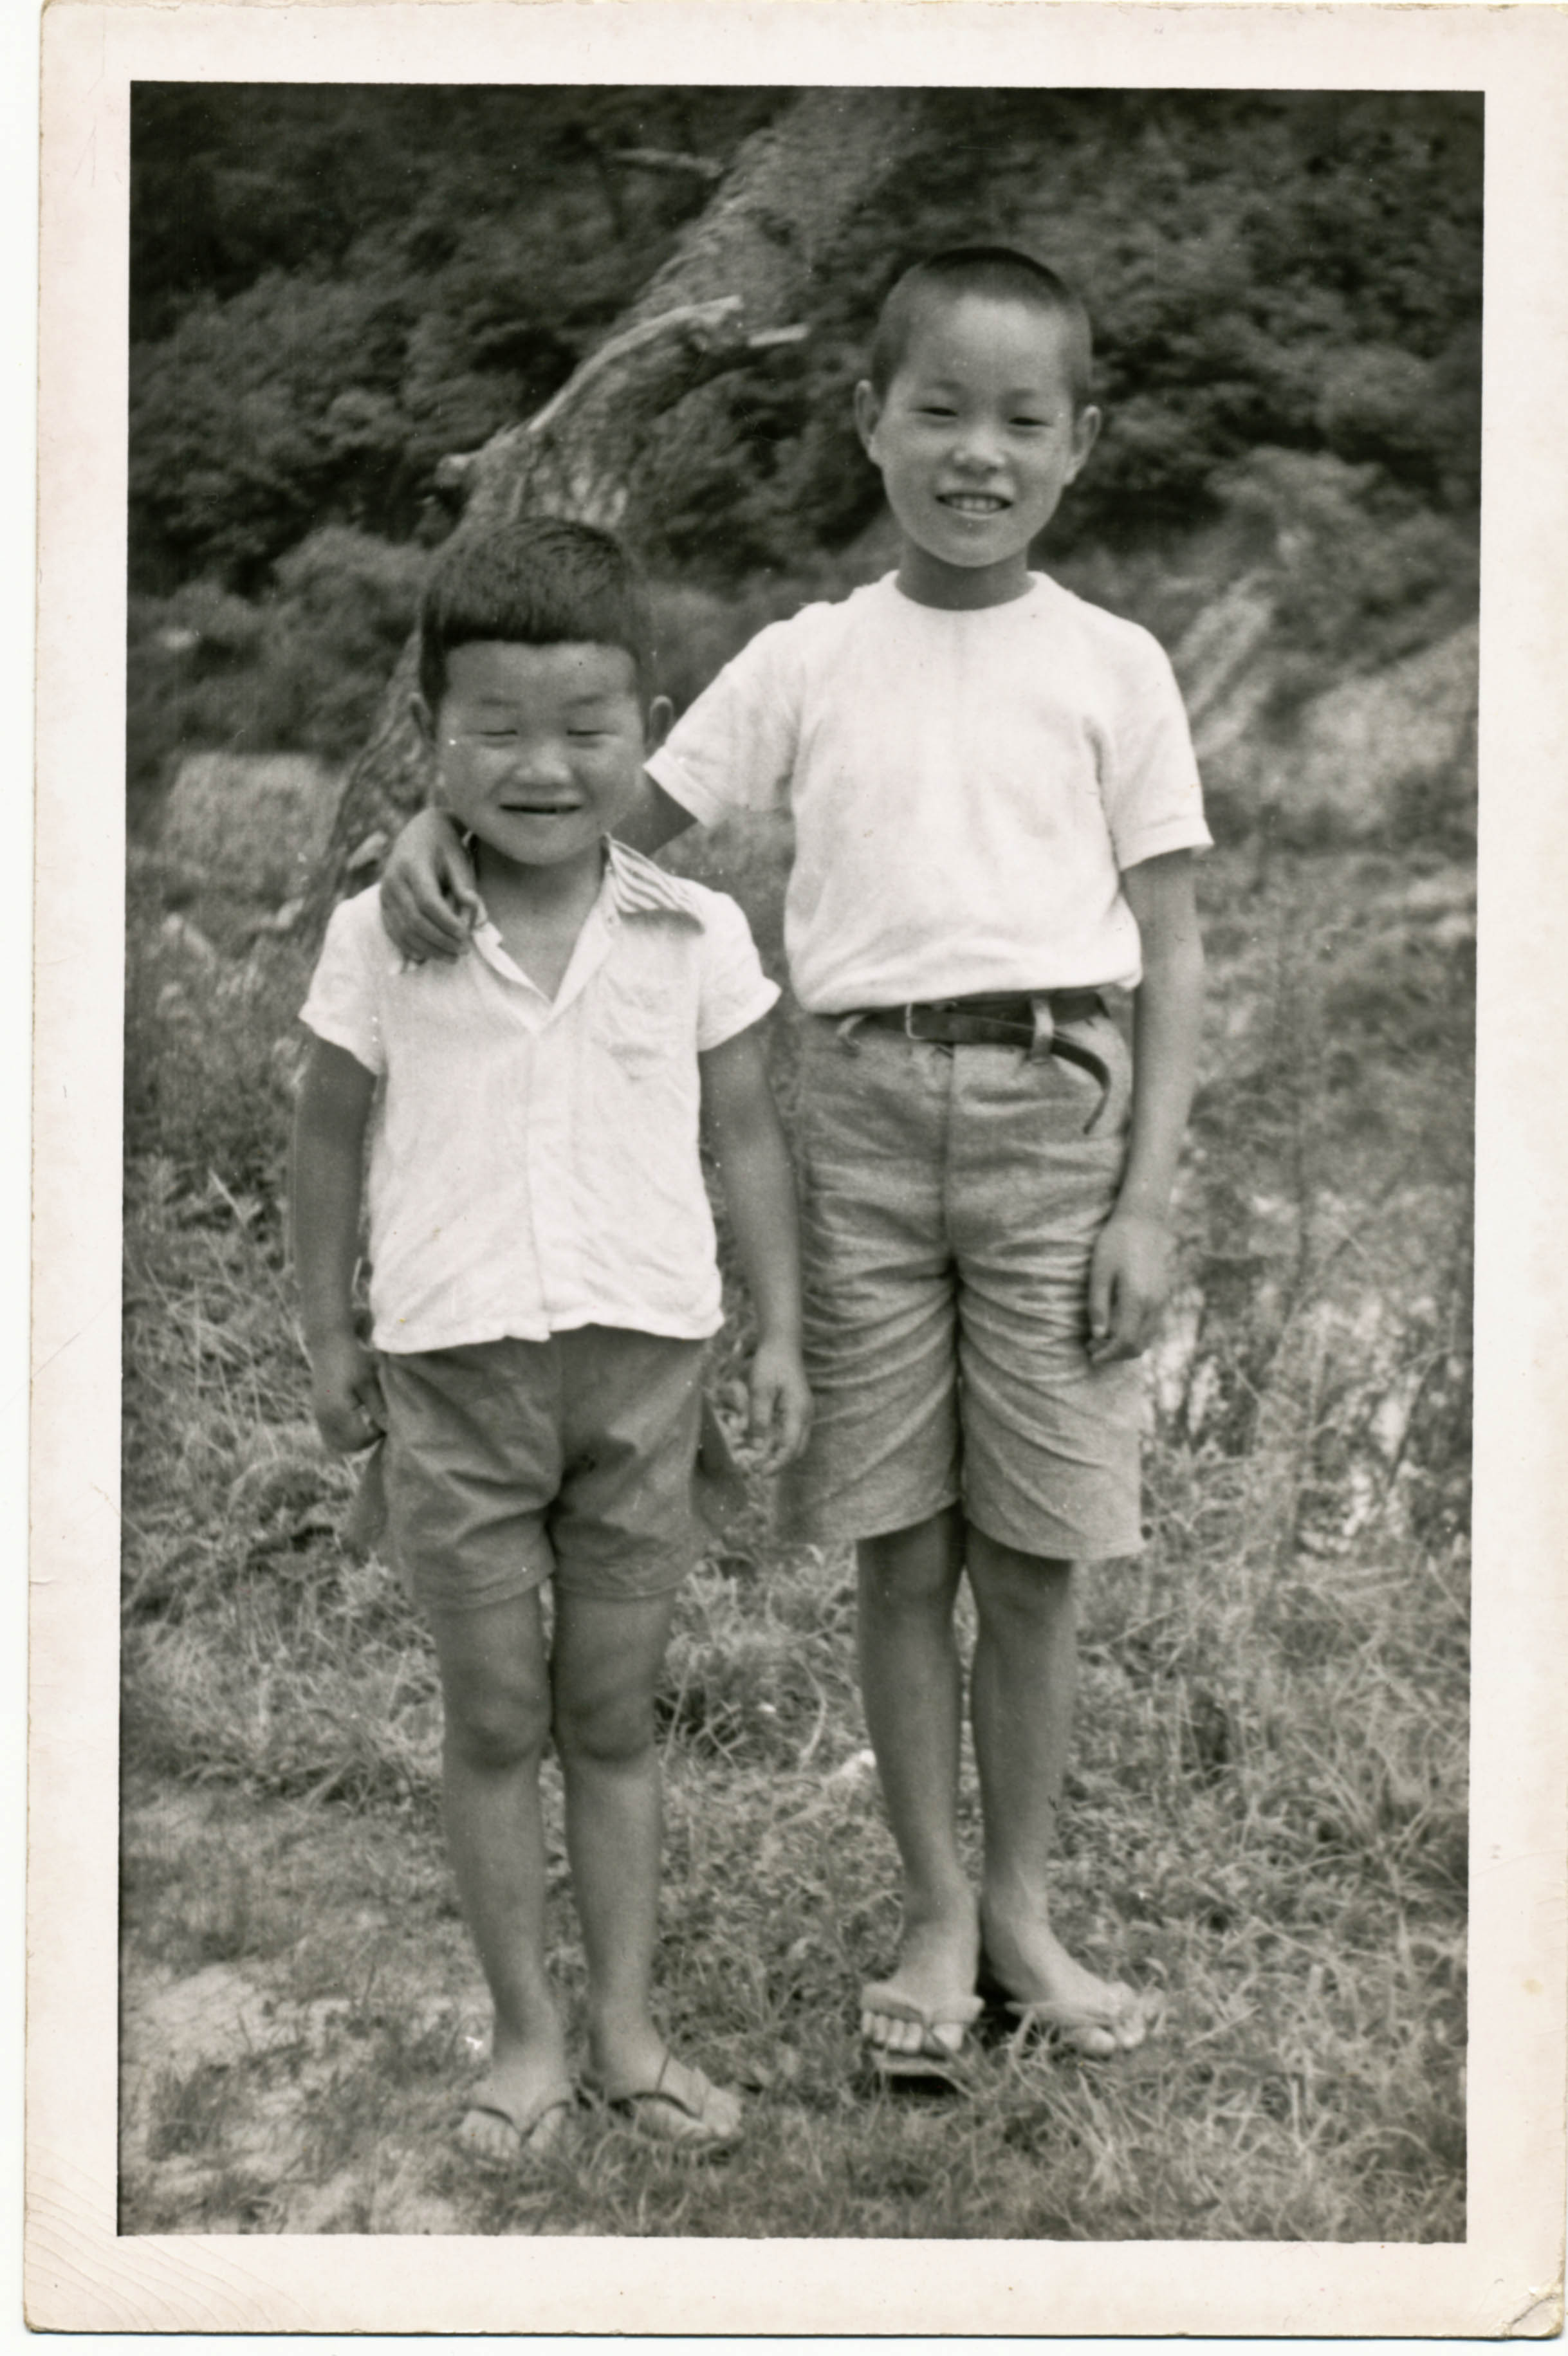 Two young children, who Peter Chisholm came across on patrol during the Korean War.